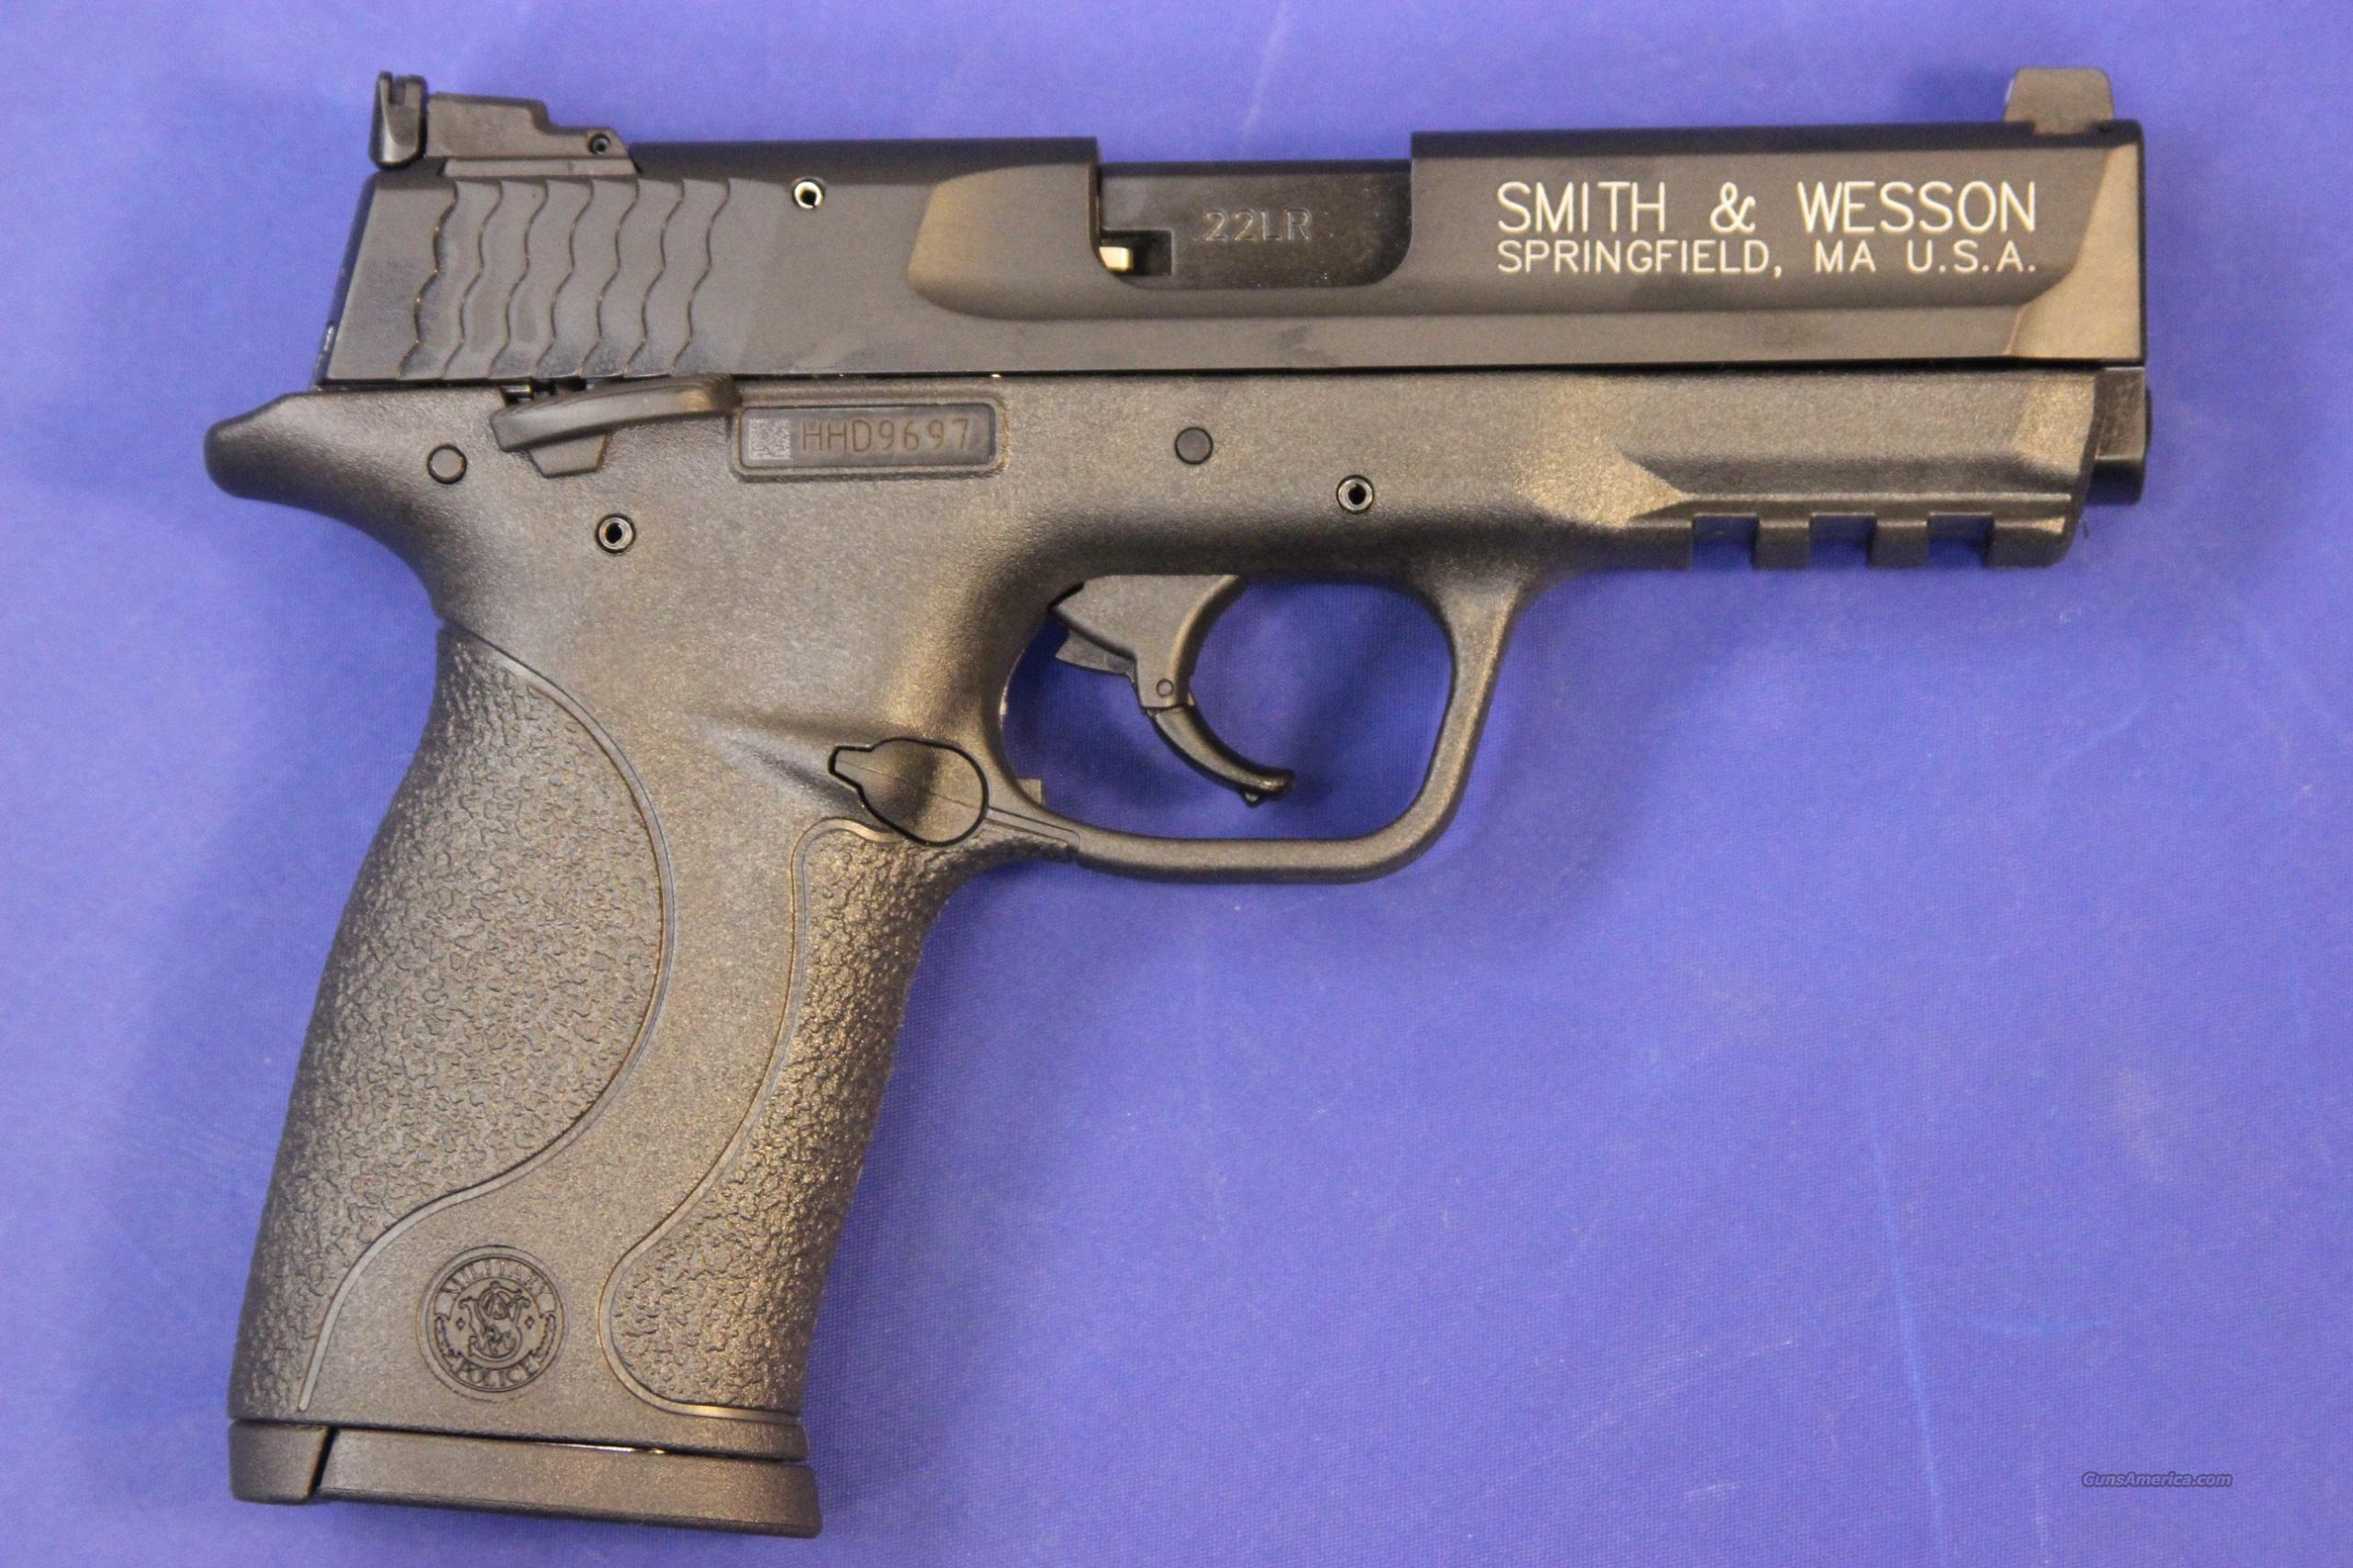 "S&W M&P 22 COMPACT 3.6"" .22 LR - NEW!  Guns > Pistols > Smith & Wesson Pistols - Autos > Polymer Frame"